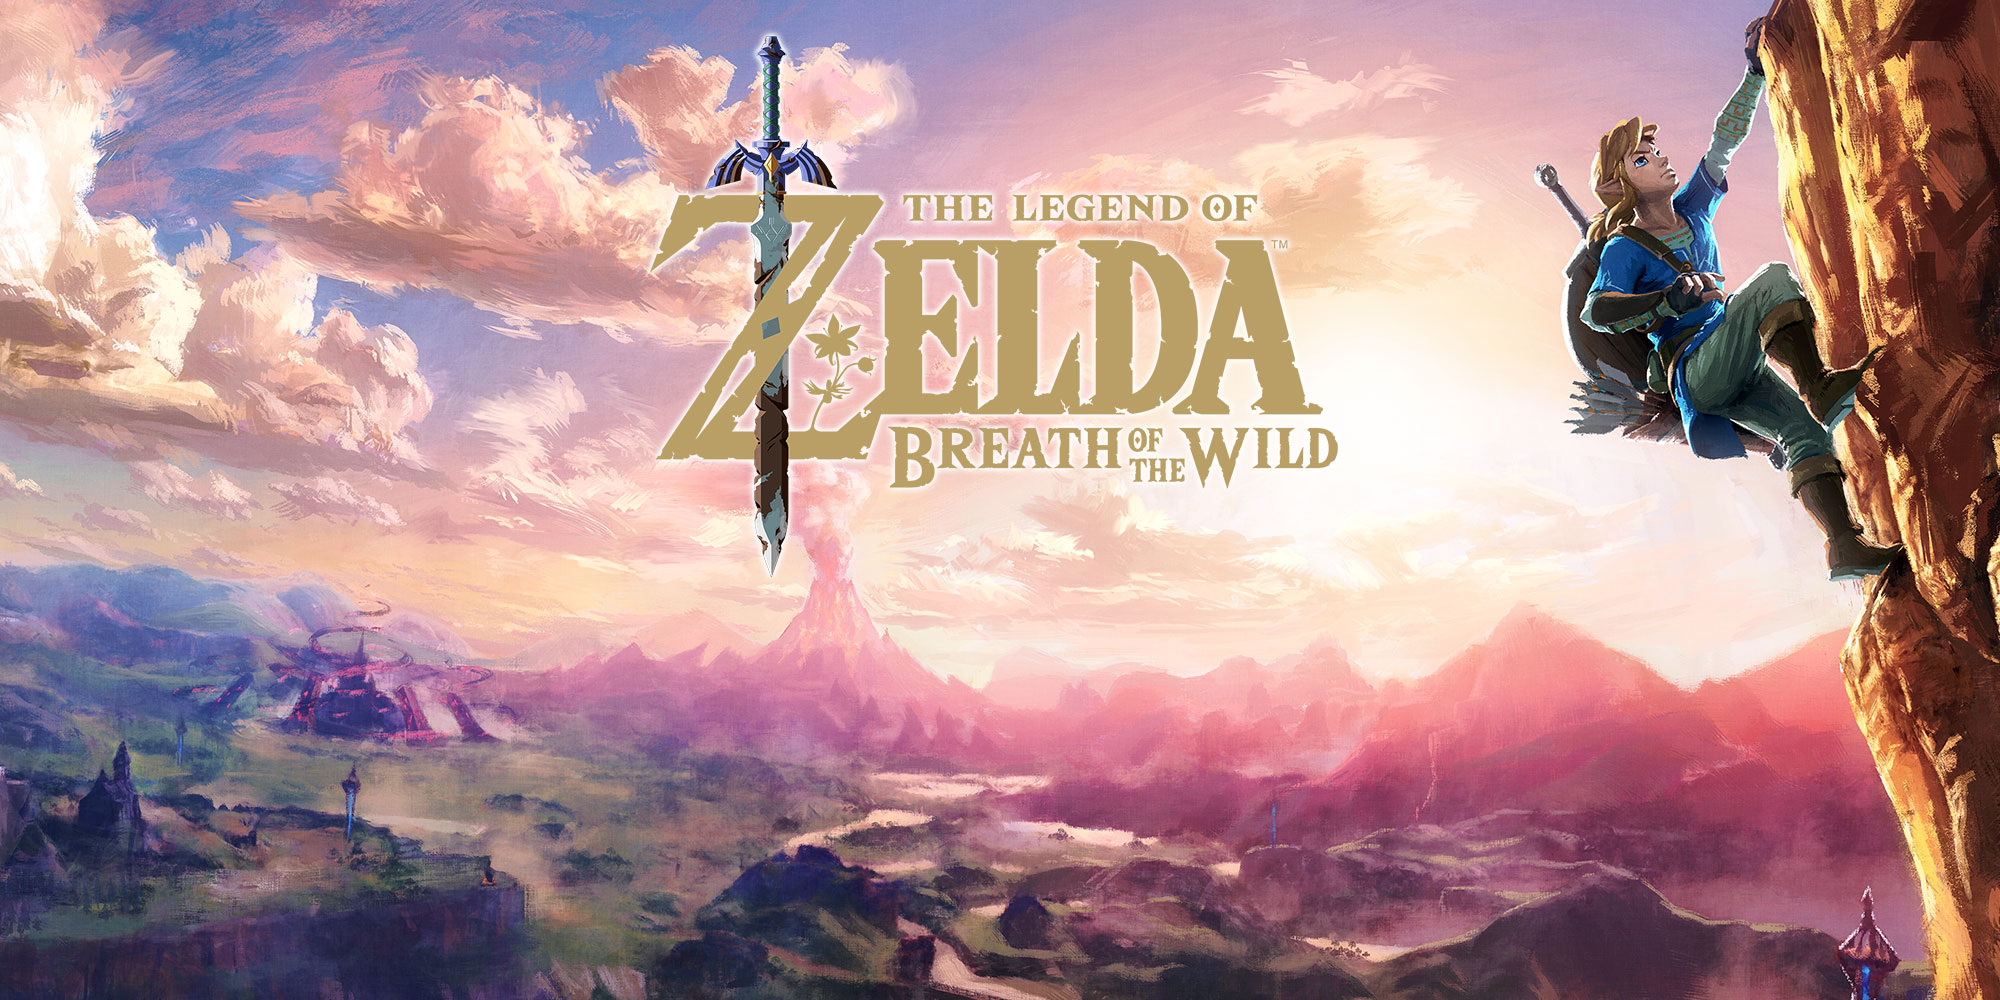 Here's Zelda Breath of the Wild w/ the Explorer's Guide for just $45 (Reg. $60) + more Switch games